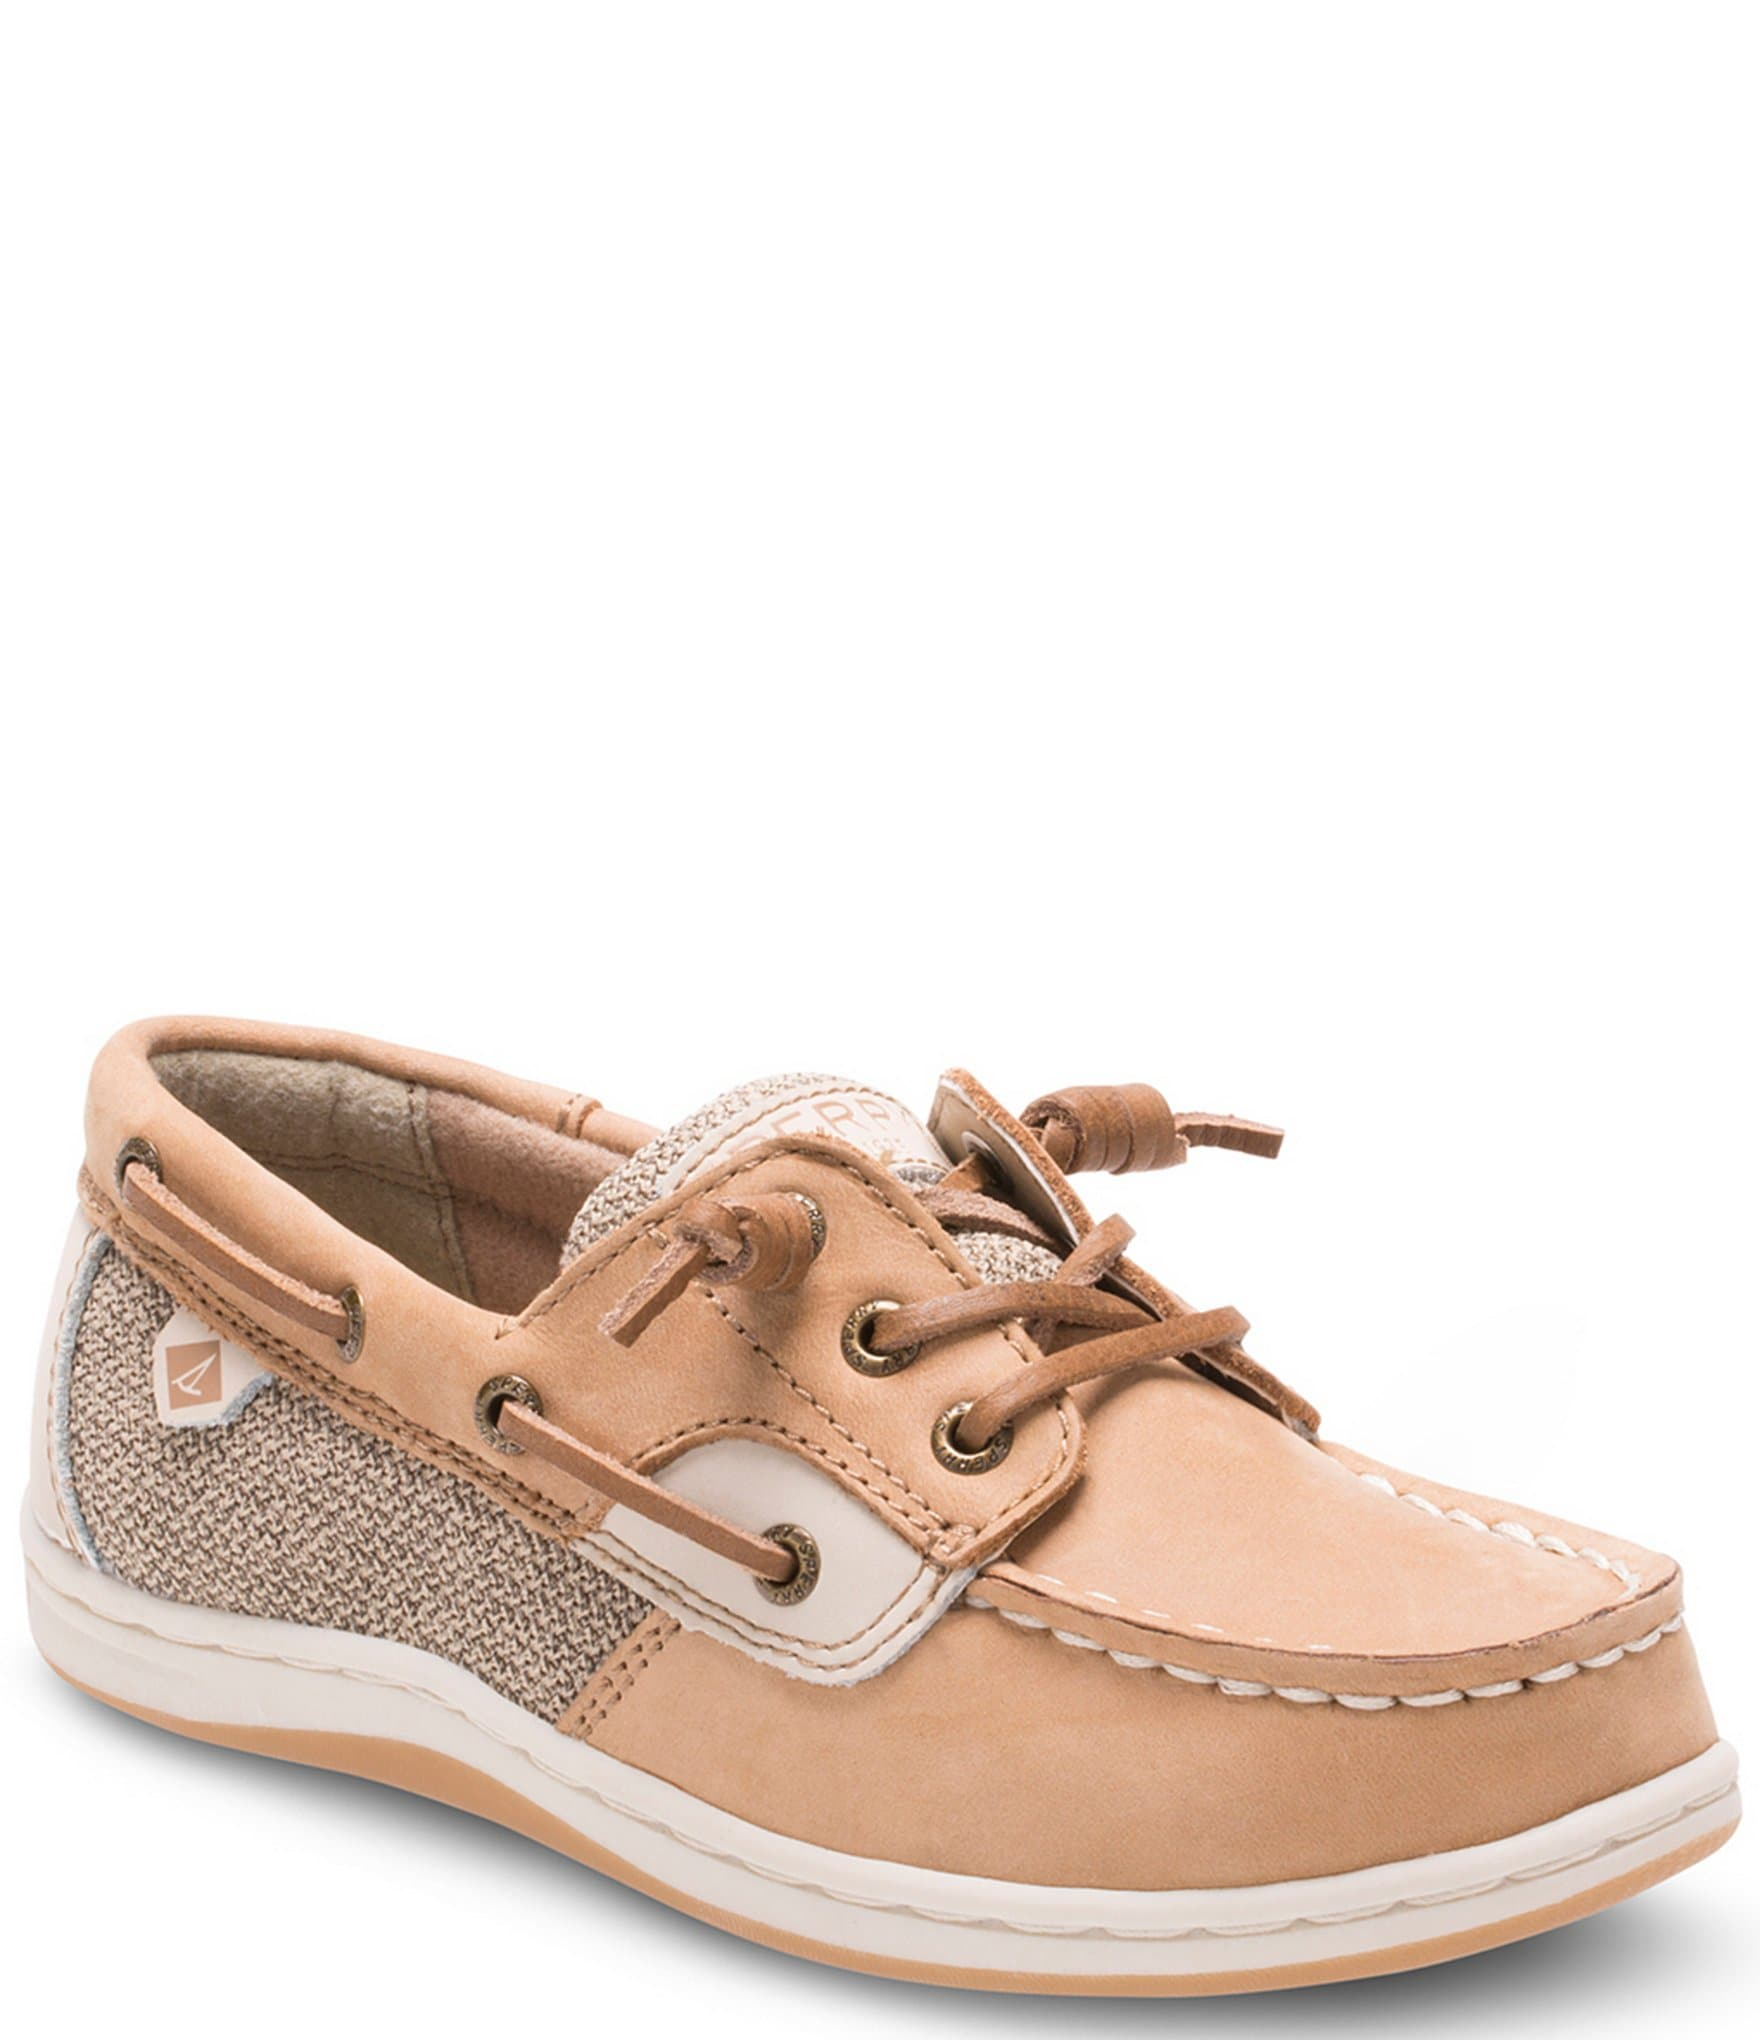 Sperry Girls' Songfish Boat Shoes